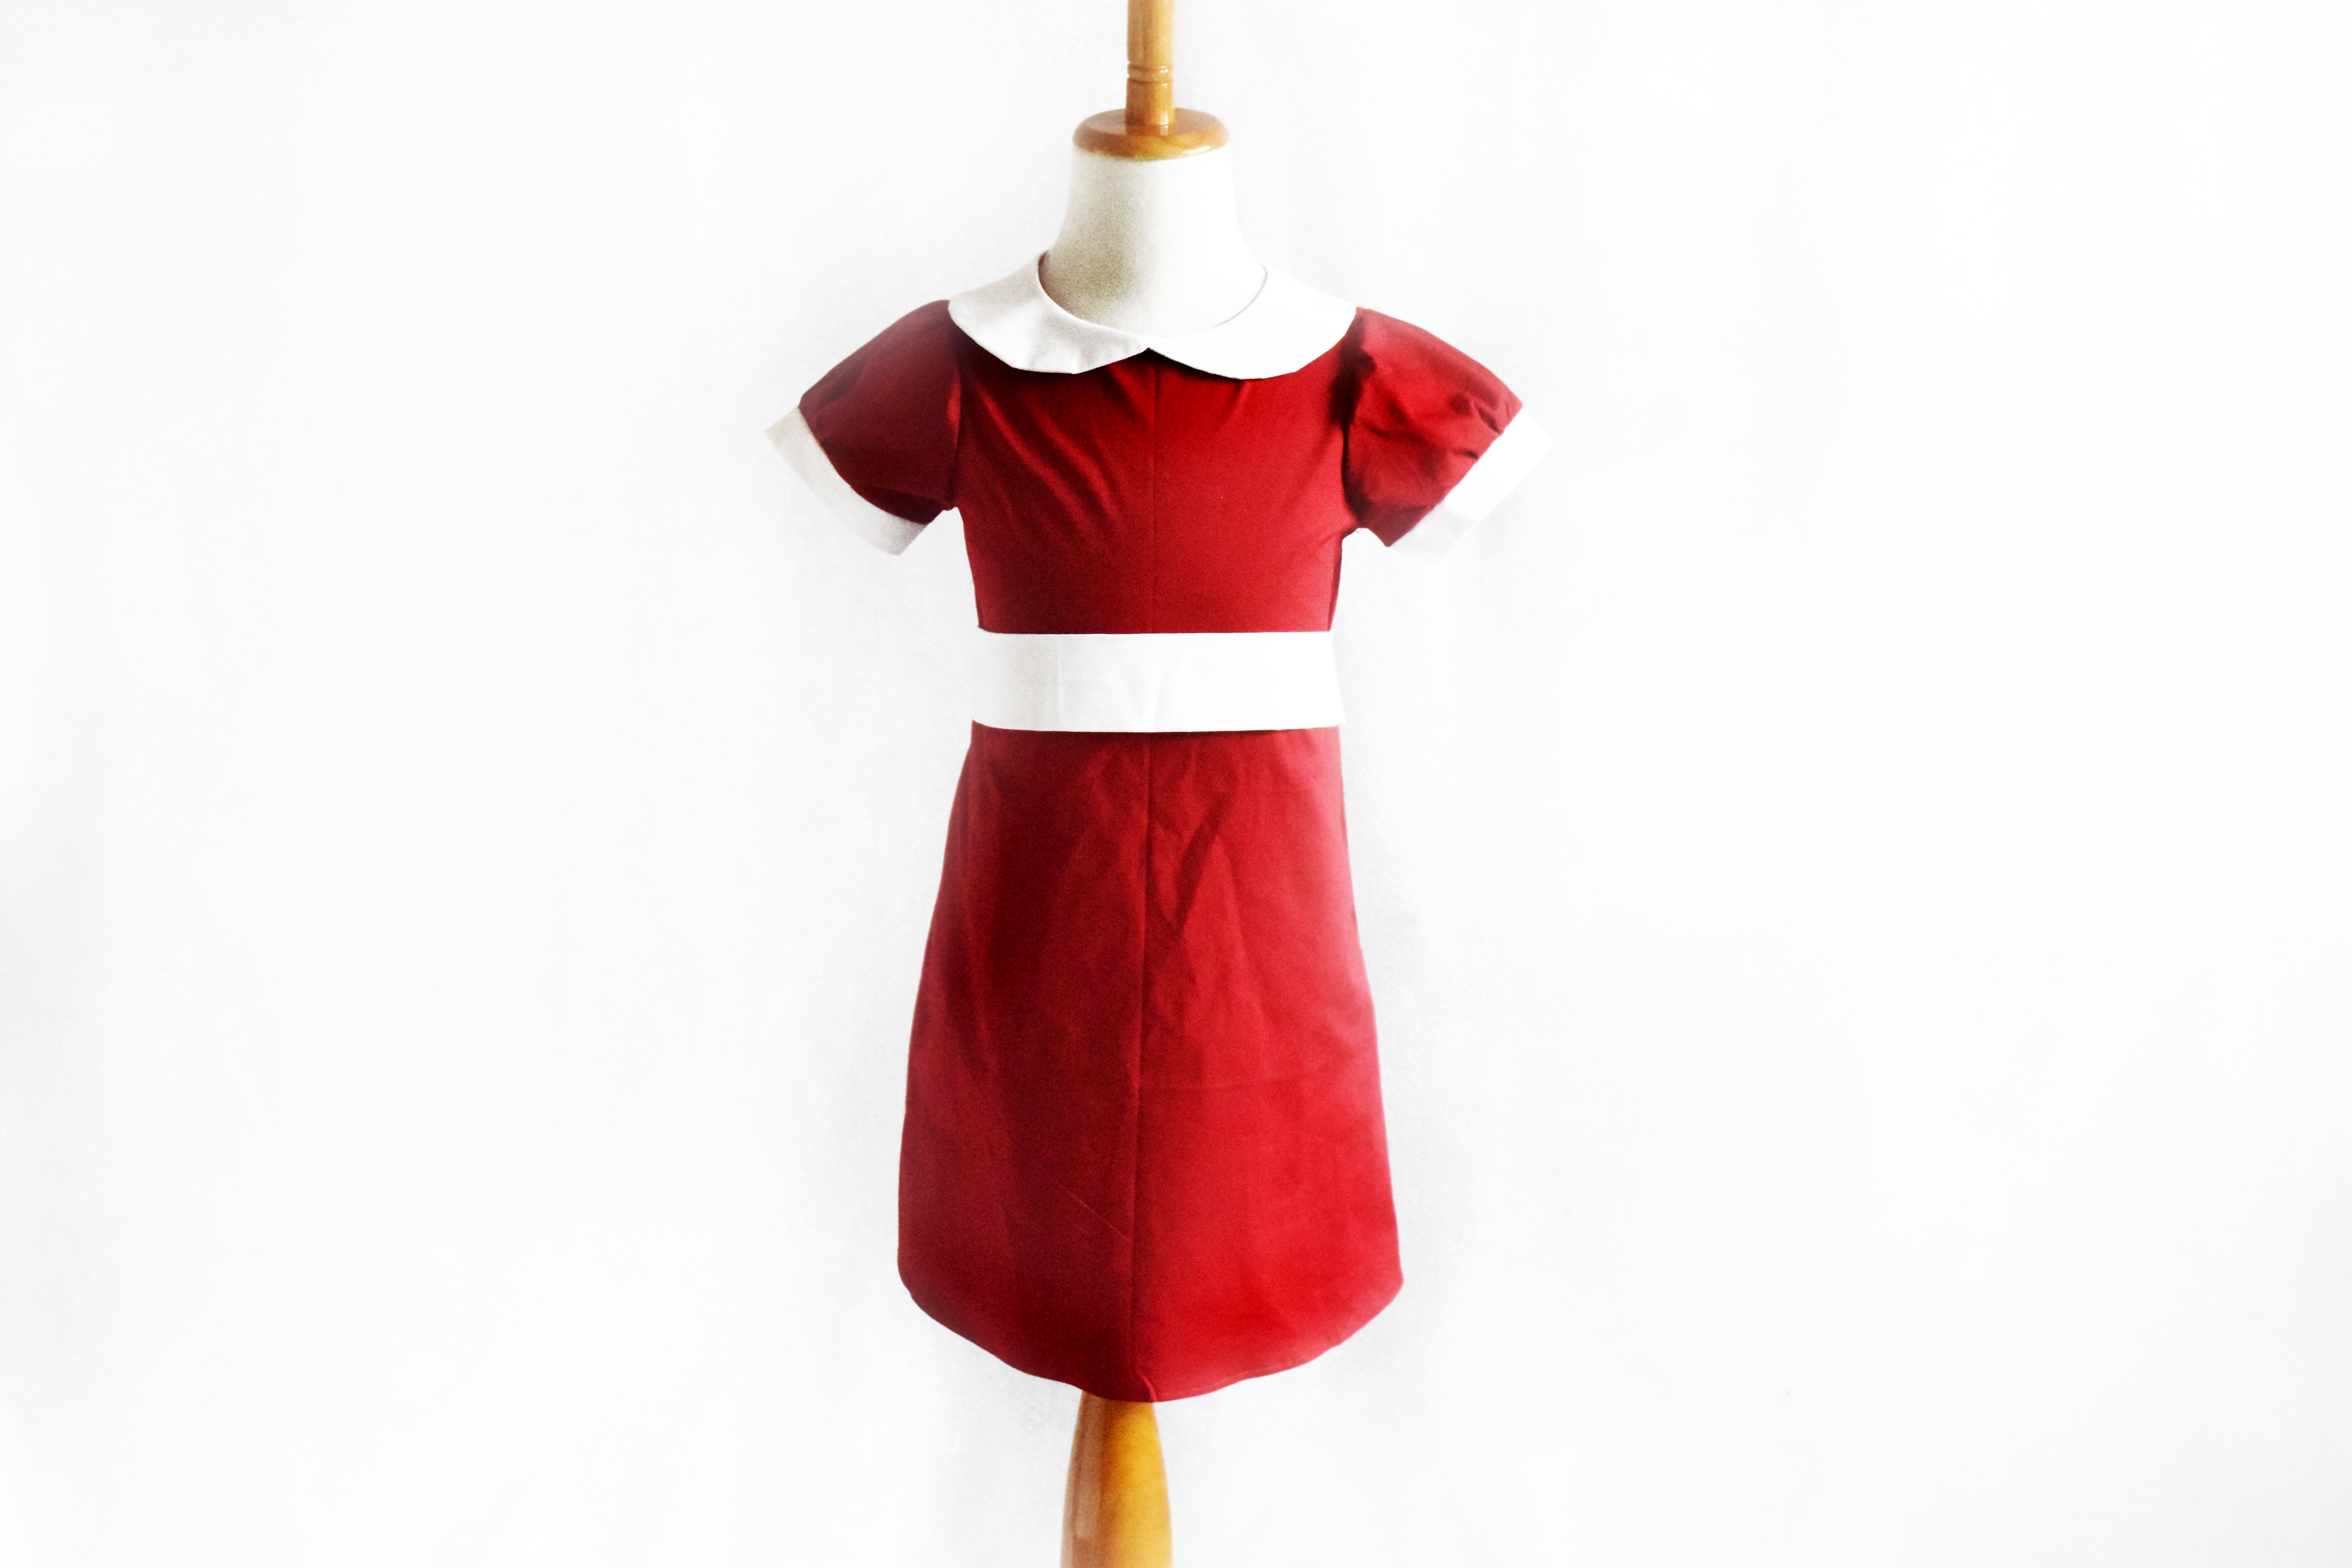 Orphan Annie Inspired Red Dress Costume